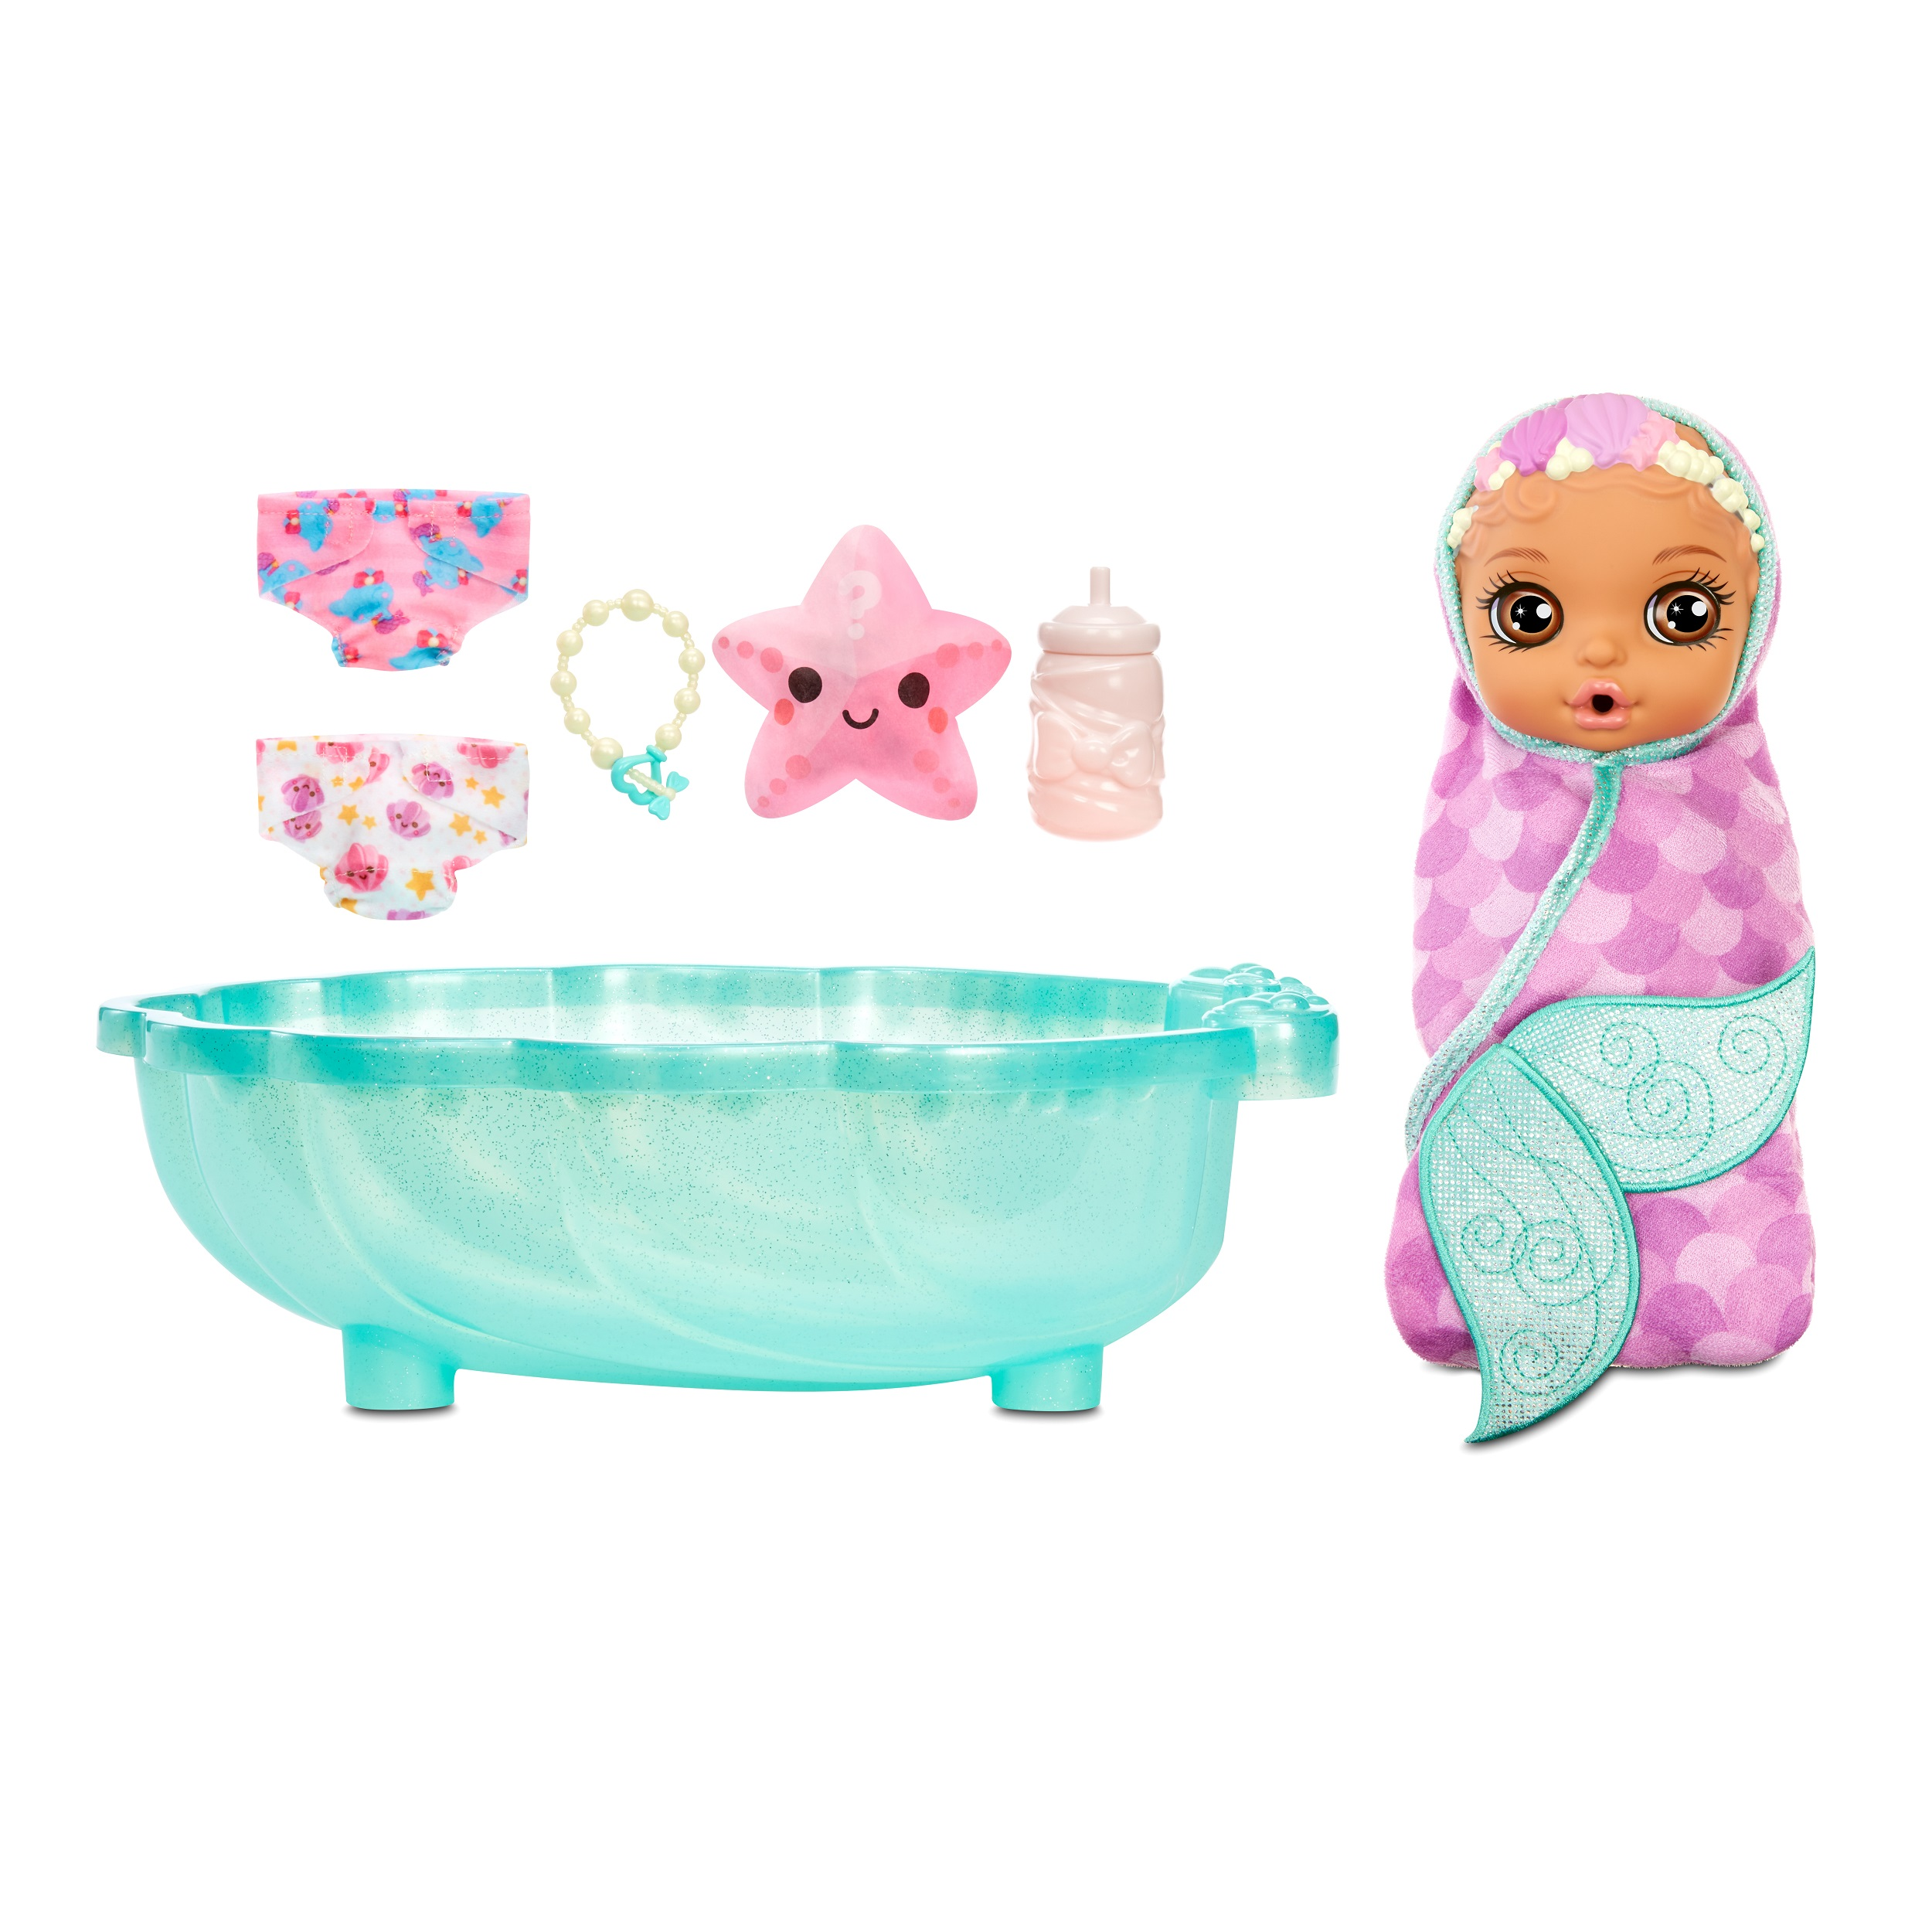 BABY born Surprise Mermaid Surprise – Baby Doll with Purple Towel and 20+ Surprises (Walmart)